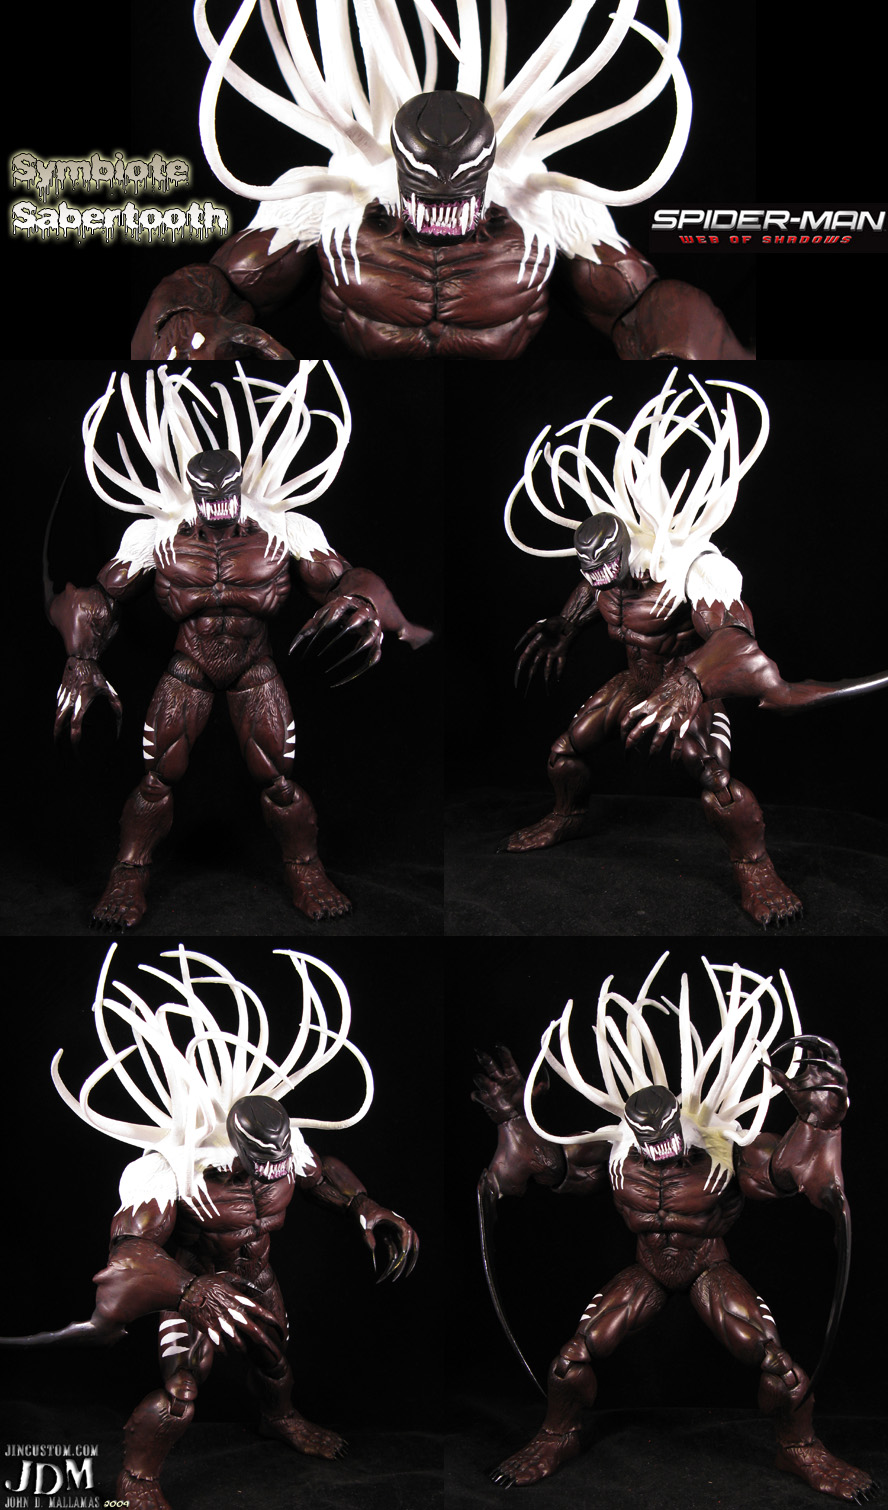 Symbiote Sabertooth by Jin-Saotome on DeviantArt